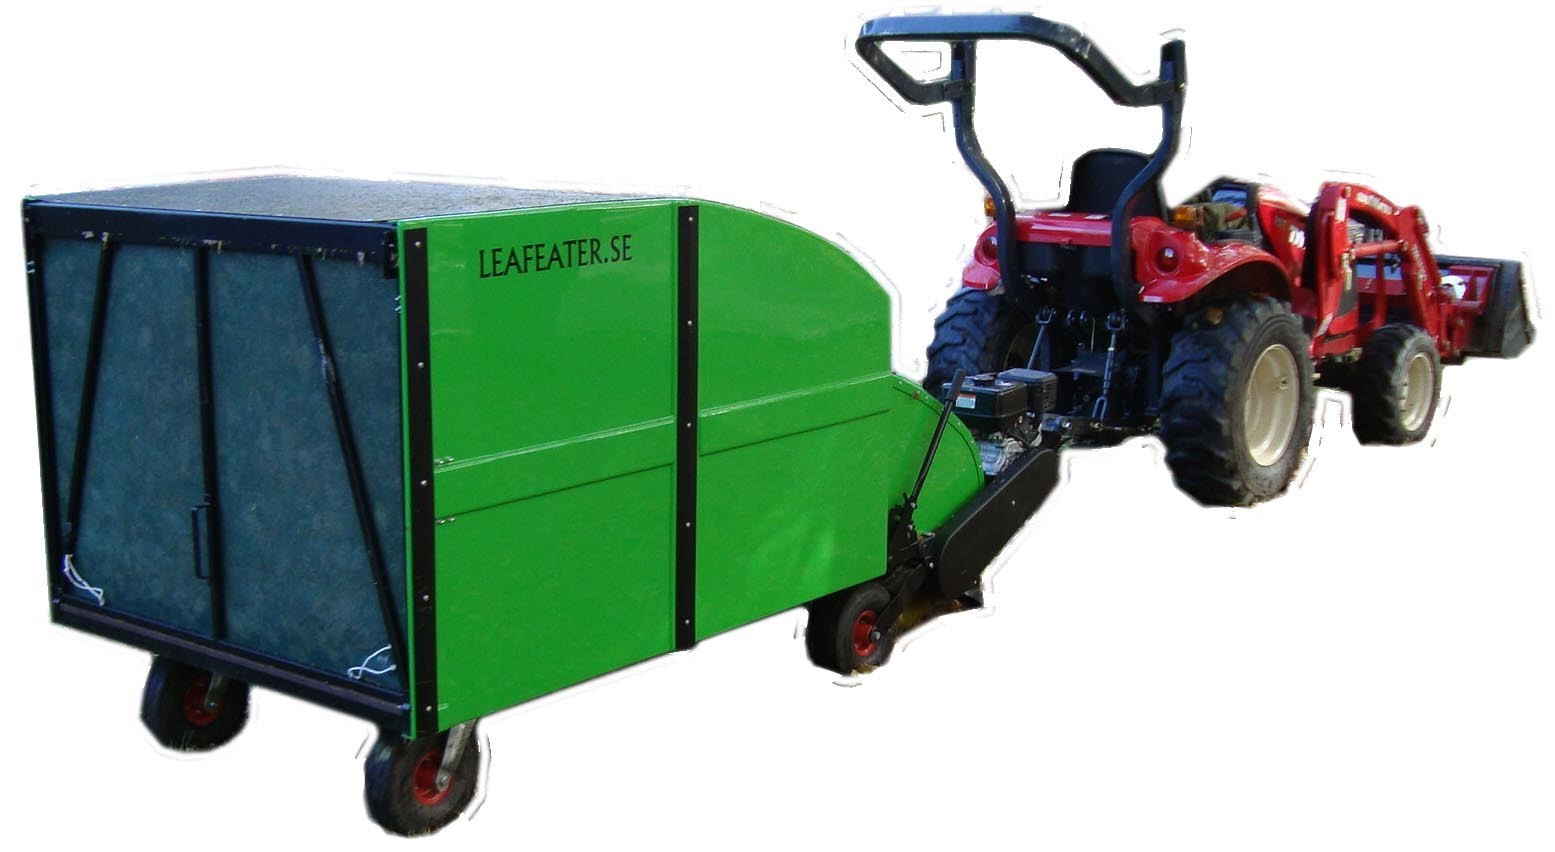 Towed machine for cleaning leaves and grass Leafeater